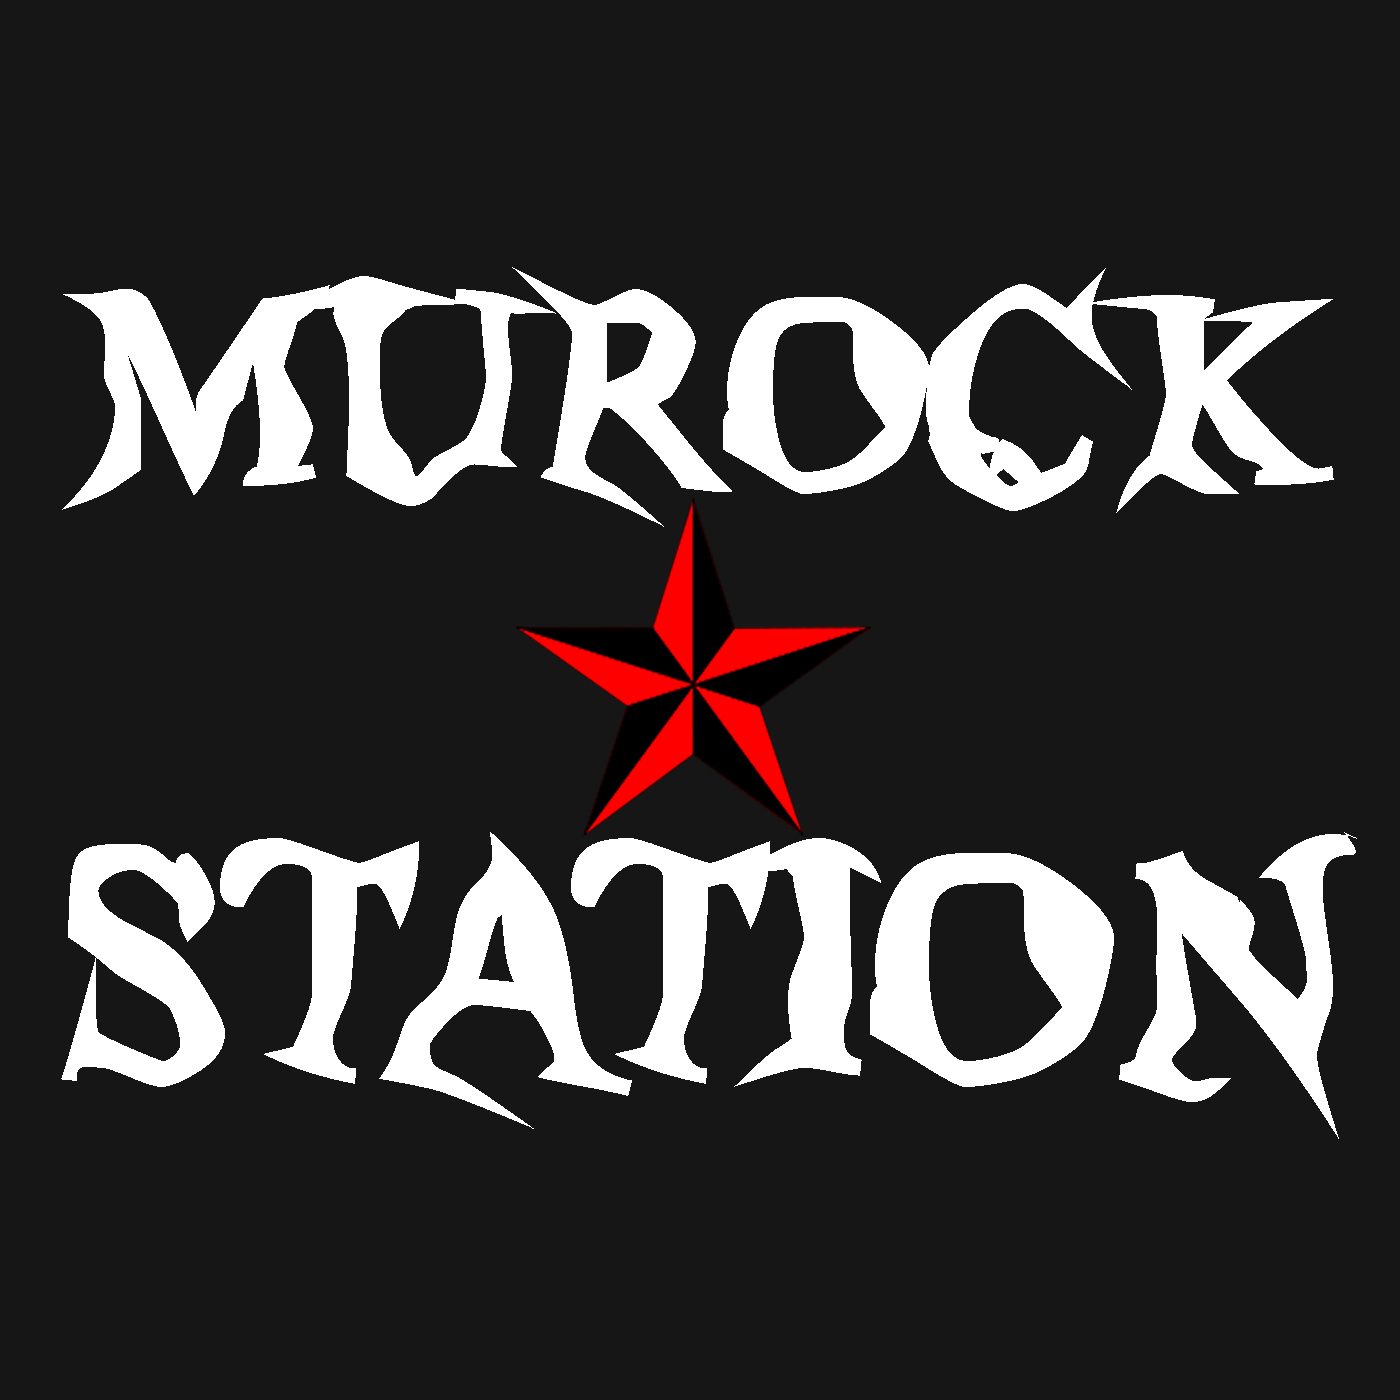 MUROCK STATION